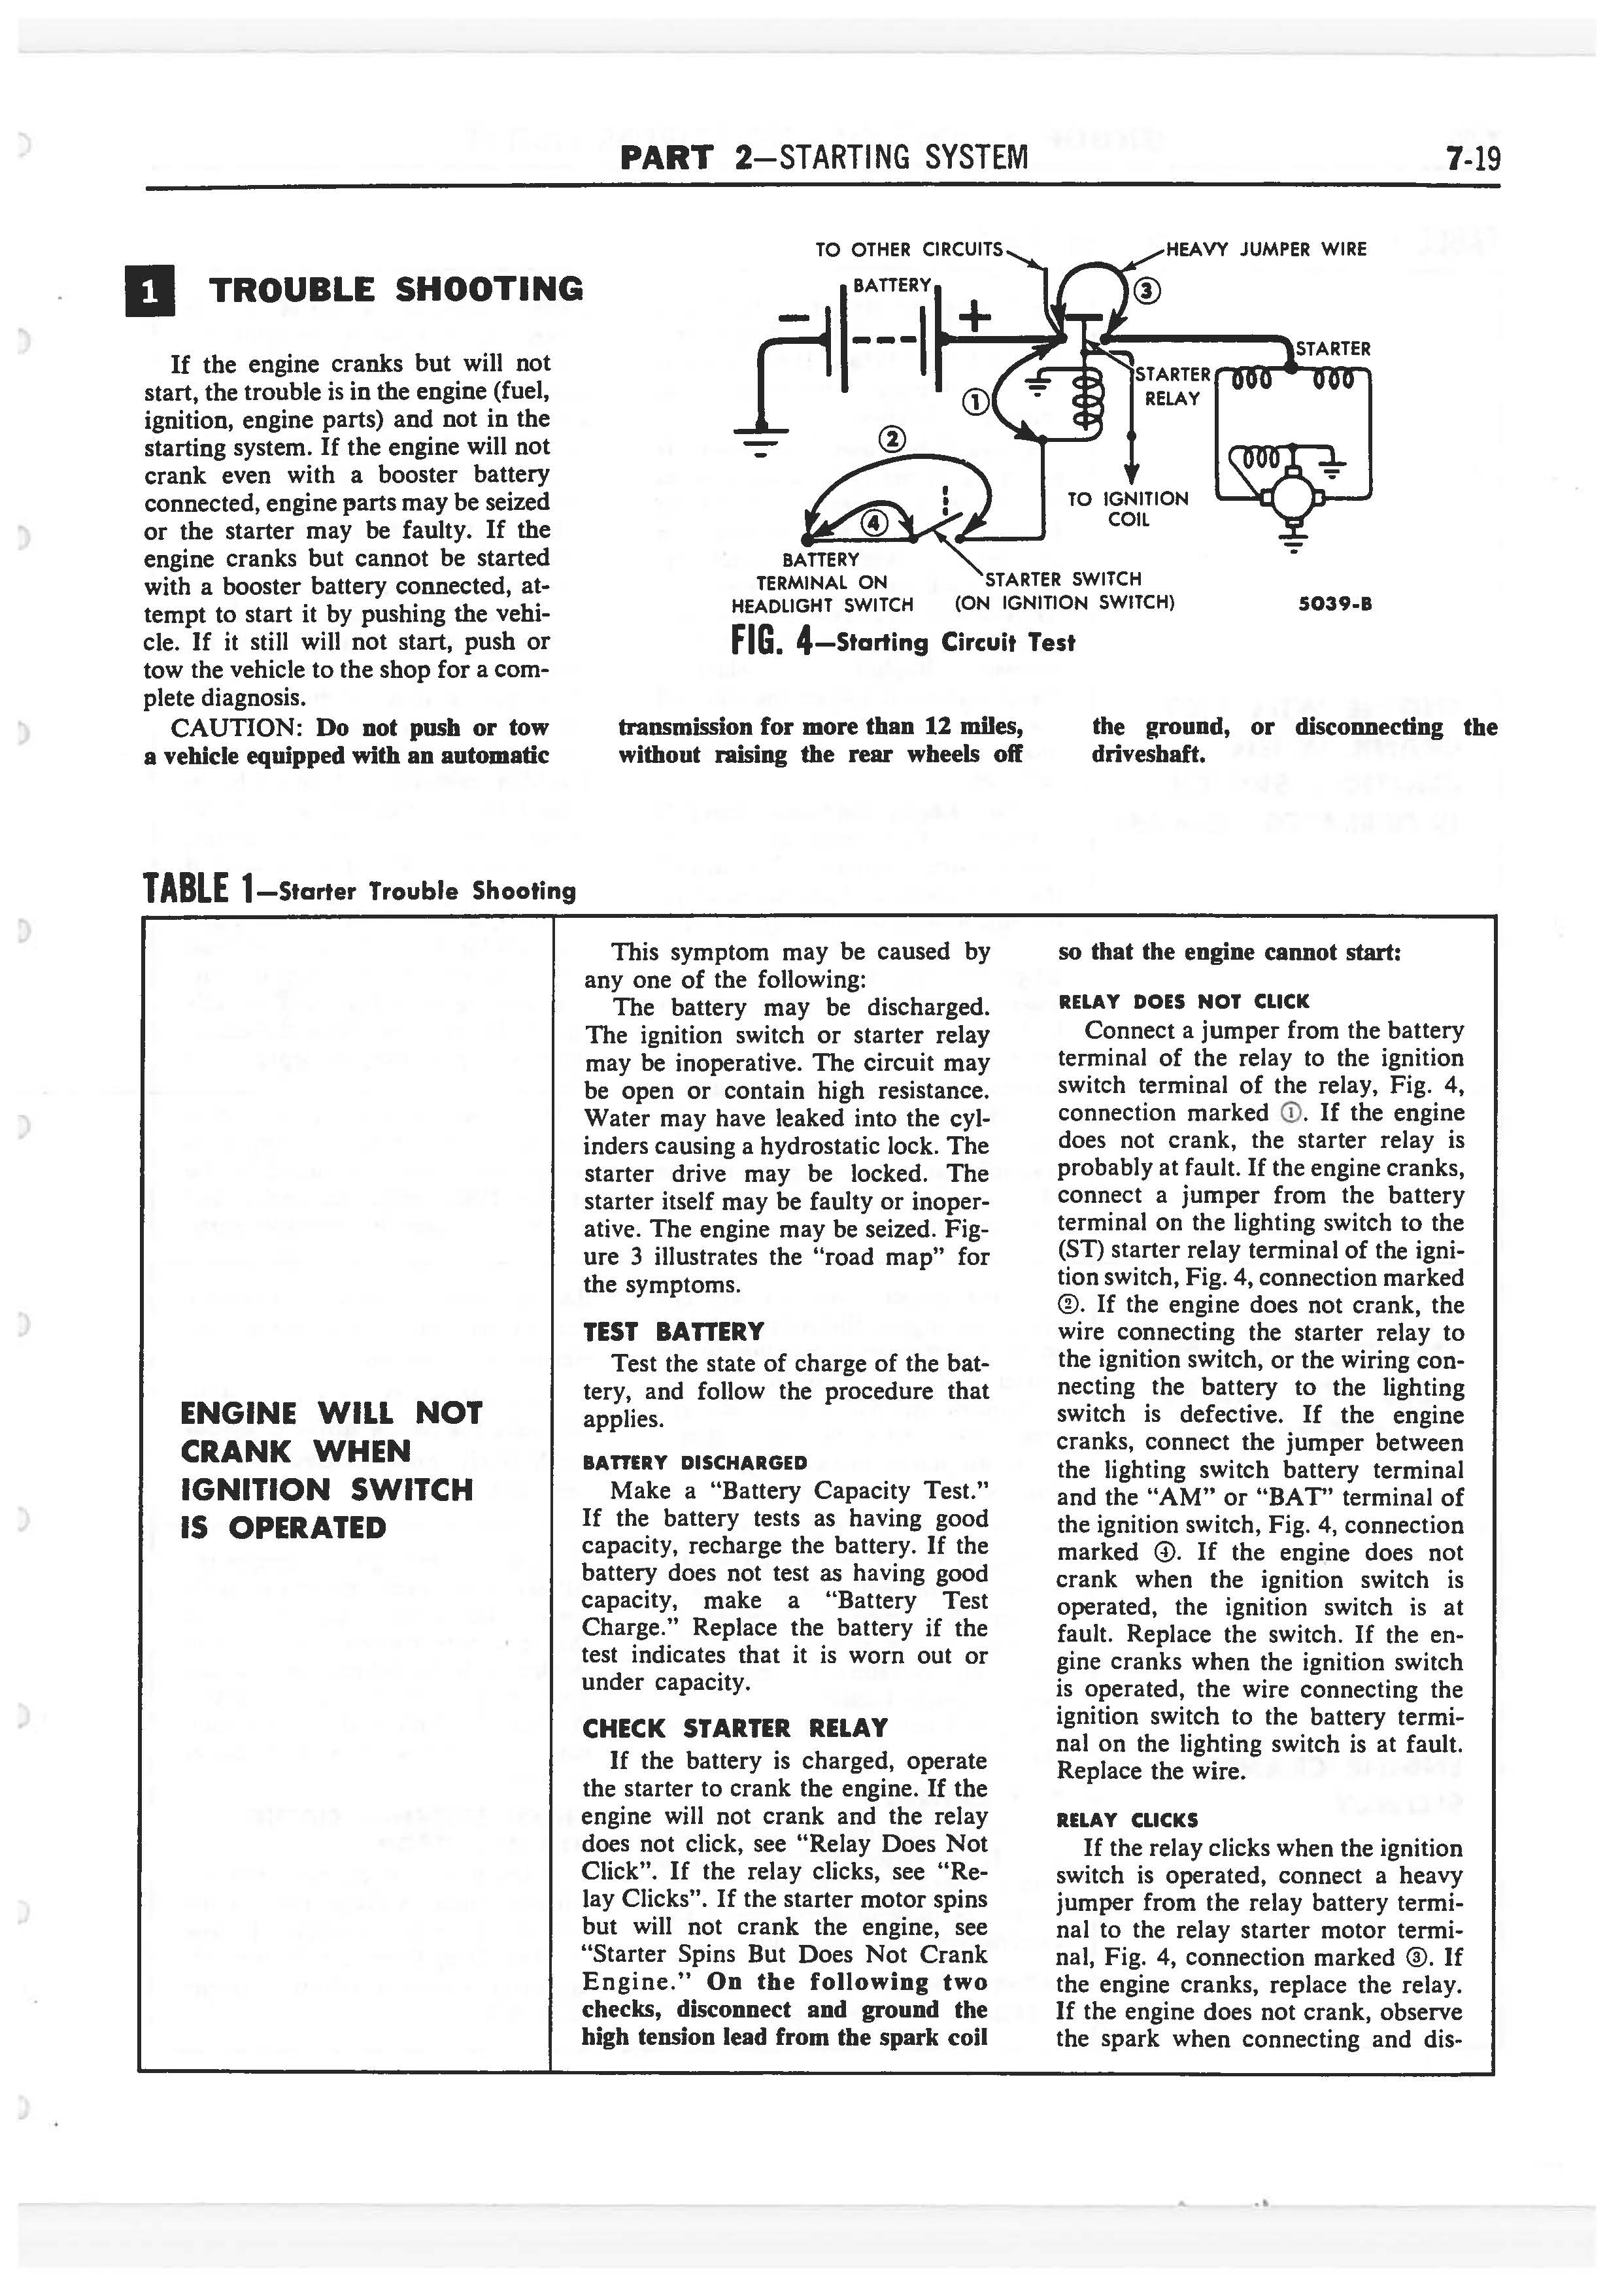 1958 Ford Thunderbird Shop Manual page 257 of 360